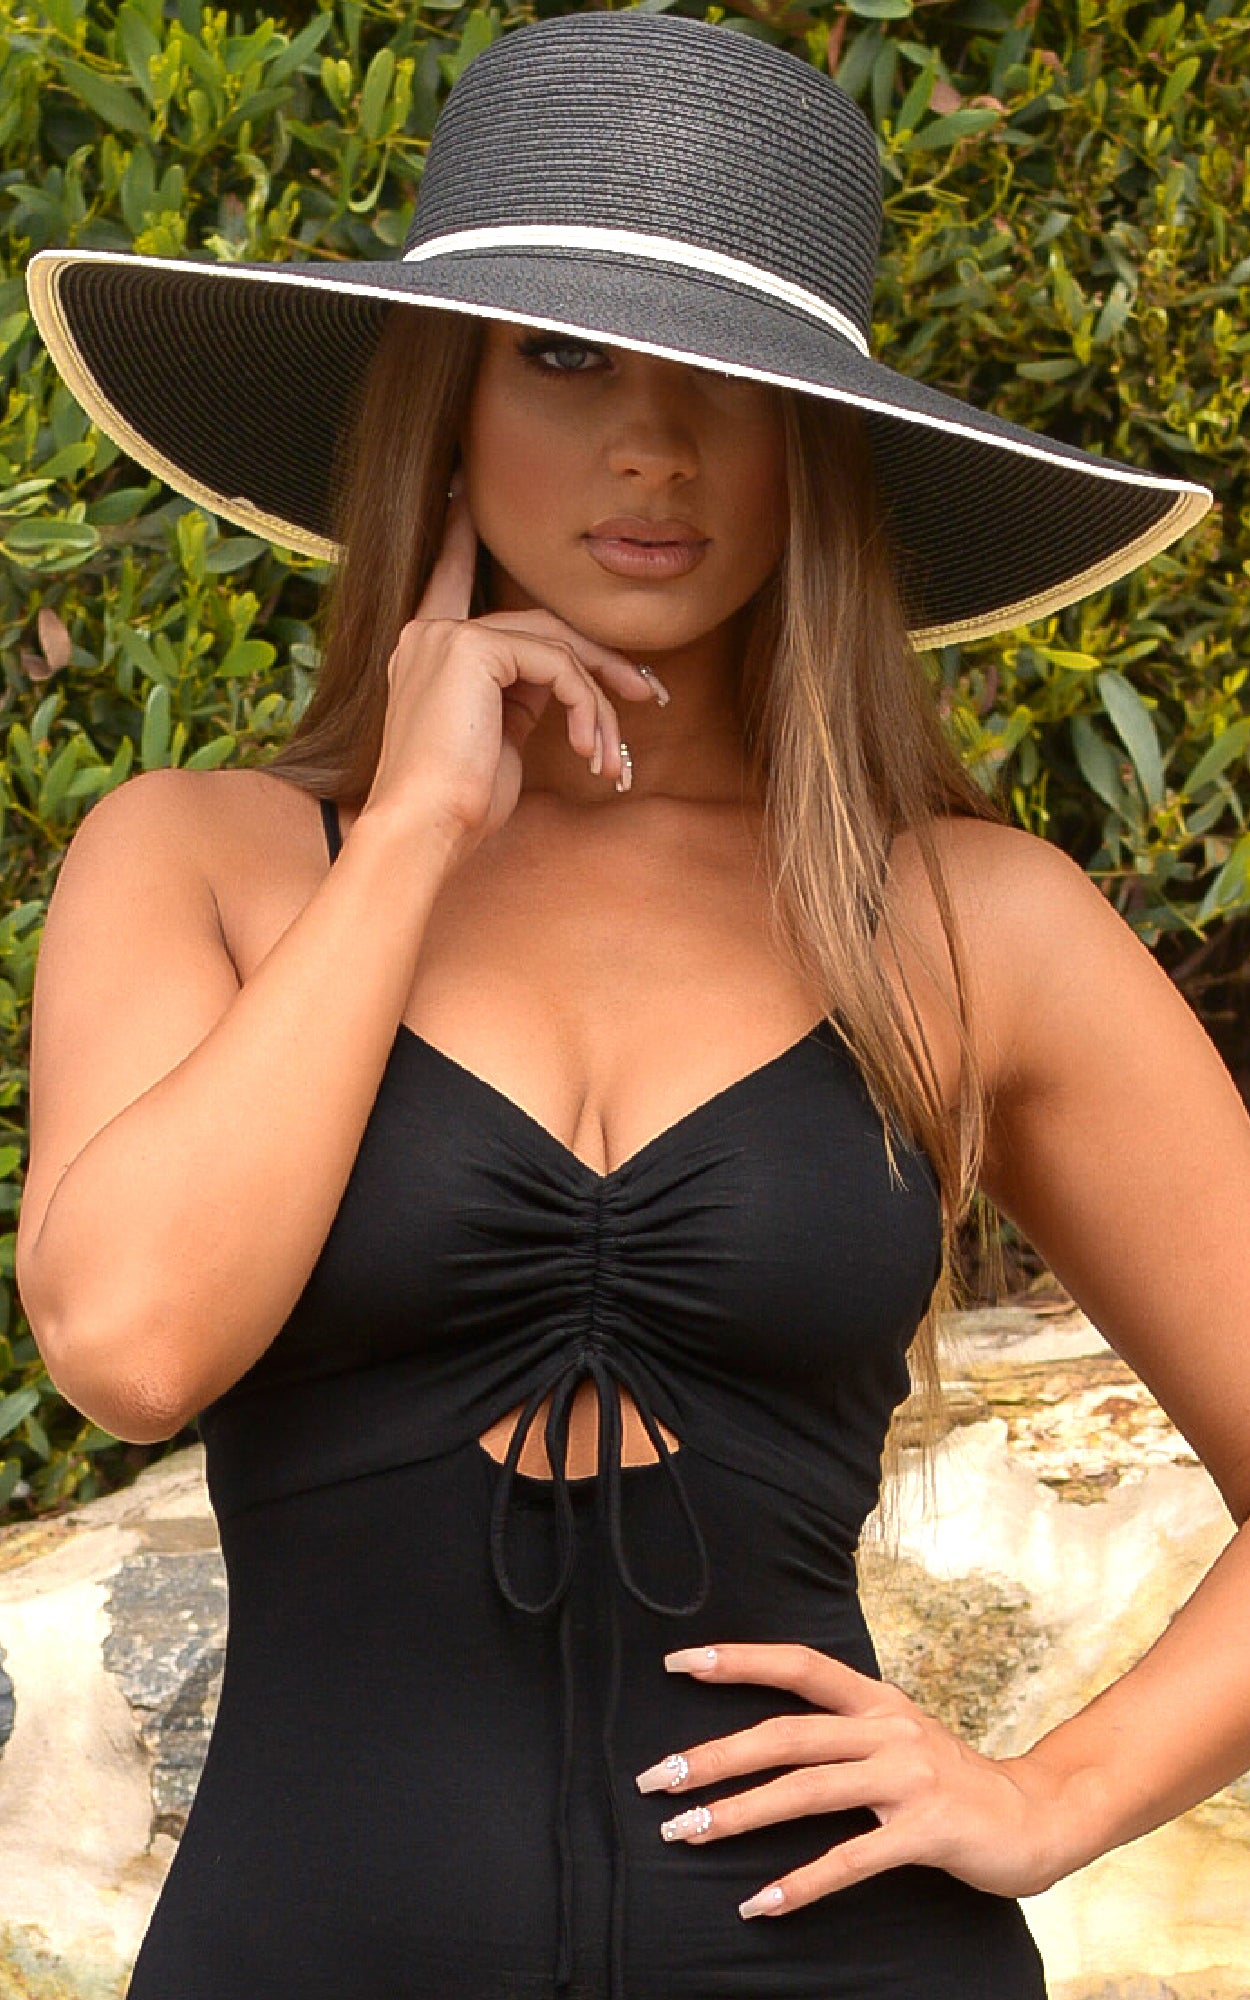 Hat: Black Oversized Floppy Hat with Beige Stripes - Chynna Dolls